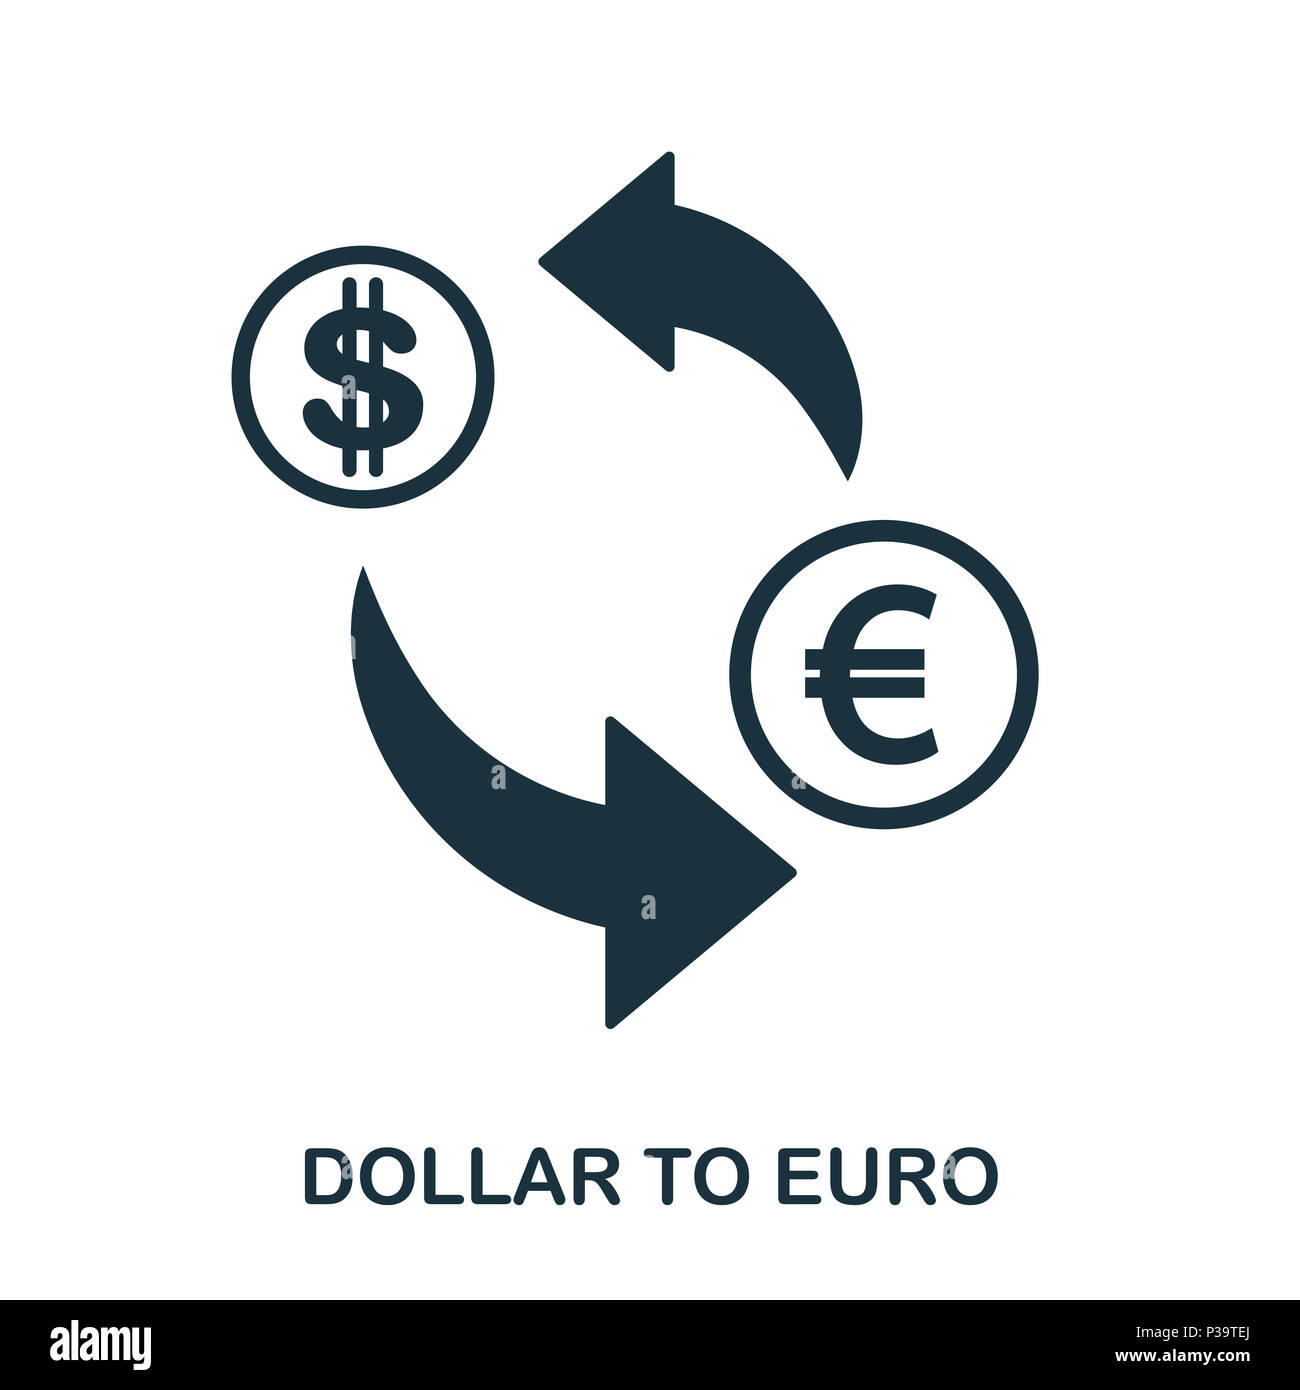 Dollar To Euro icon. Mobile app, printing, web site icon. Simple element sing. Monochrome Dollar To Euro icon illustration. Stock Photo